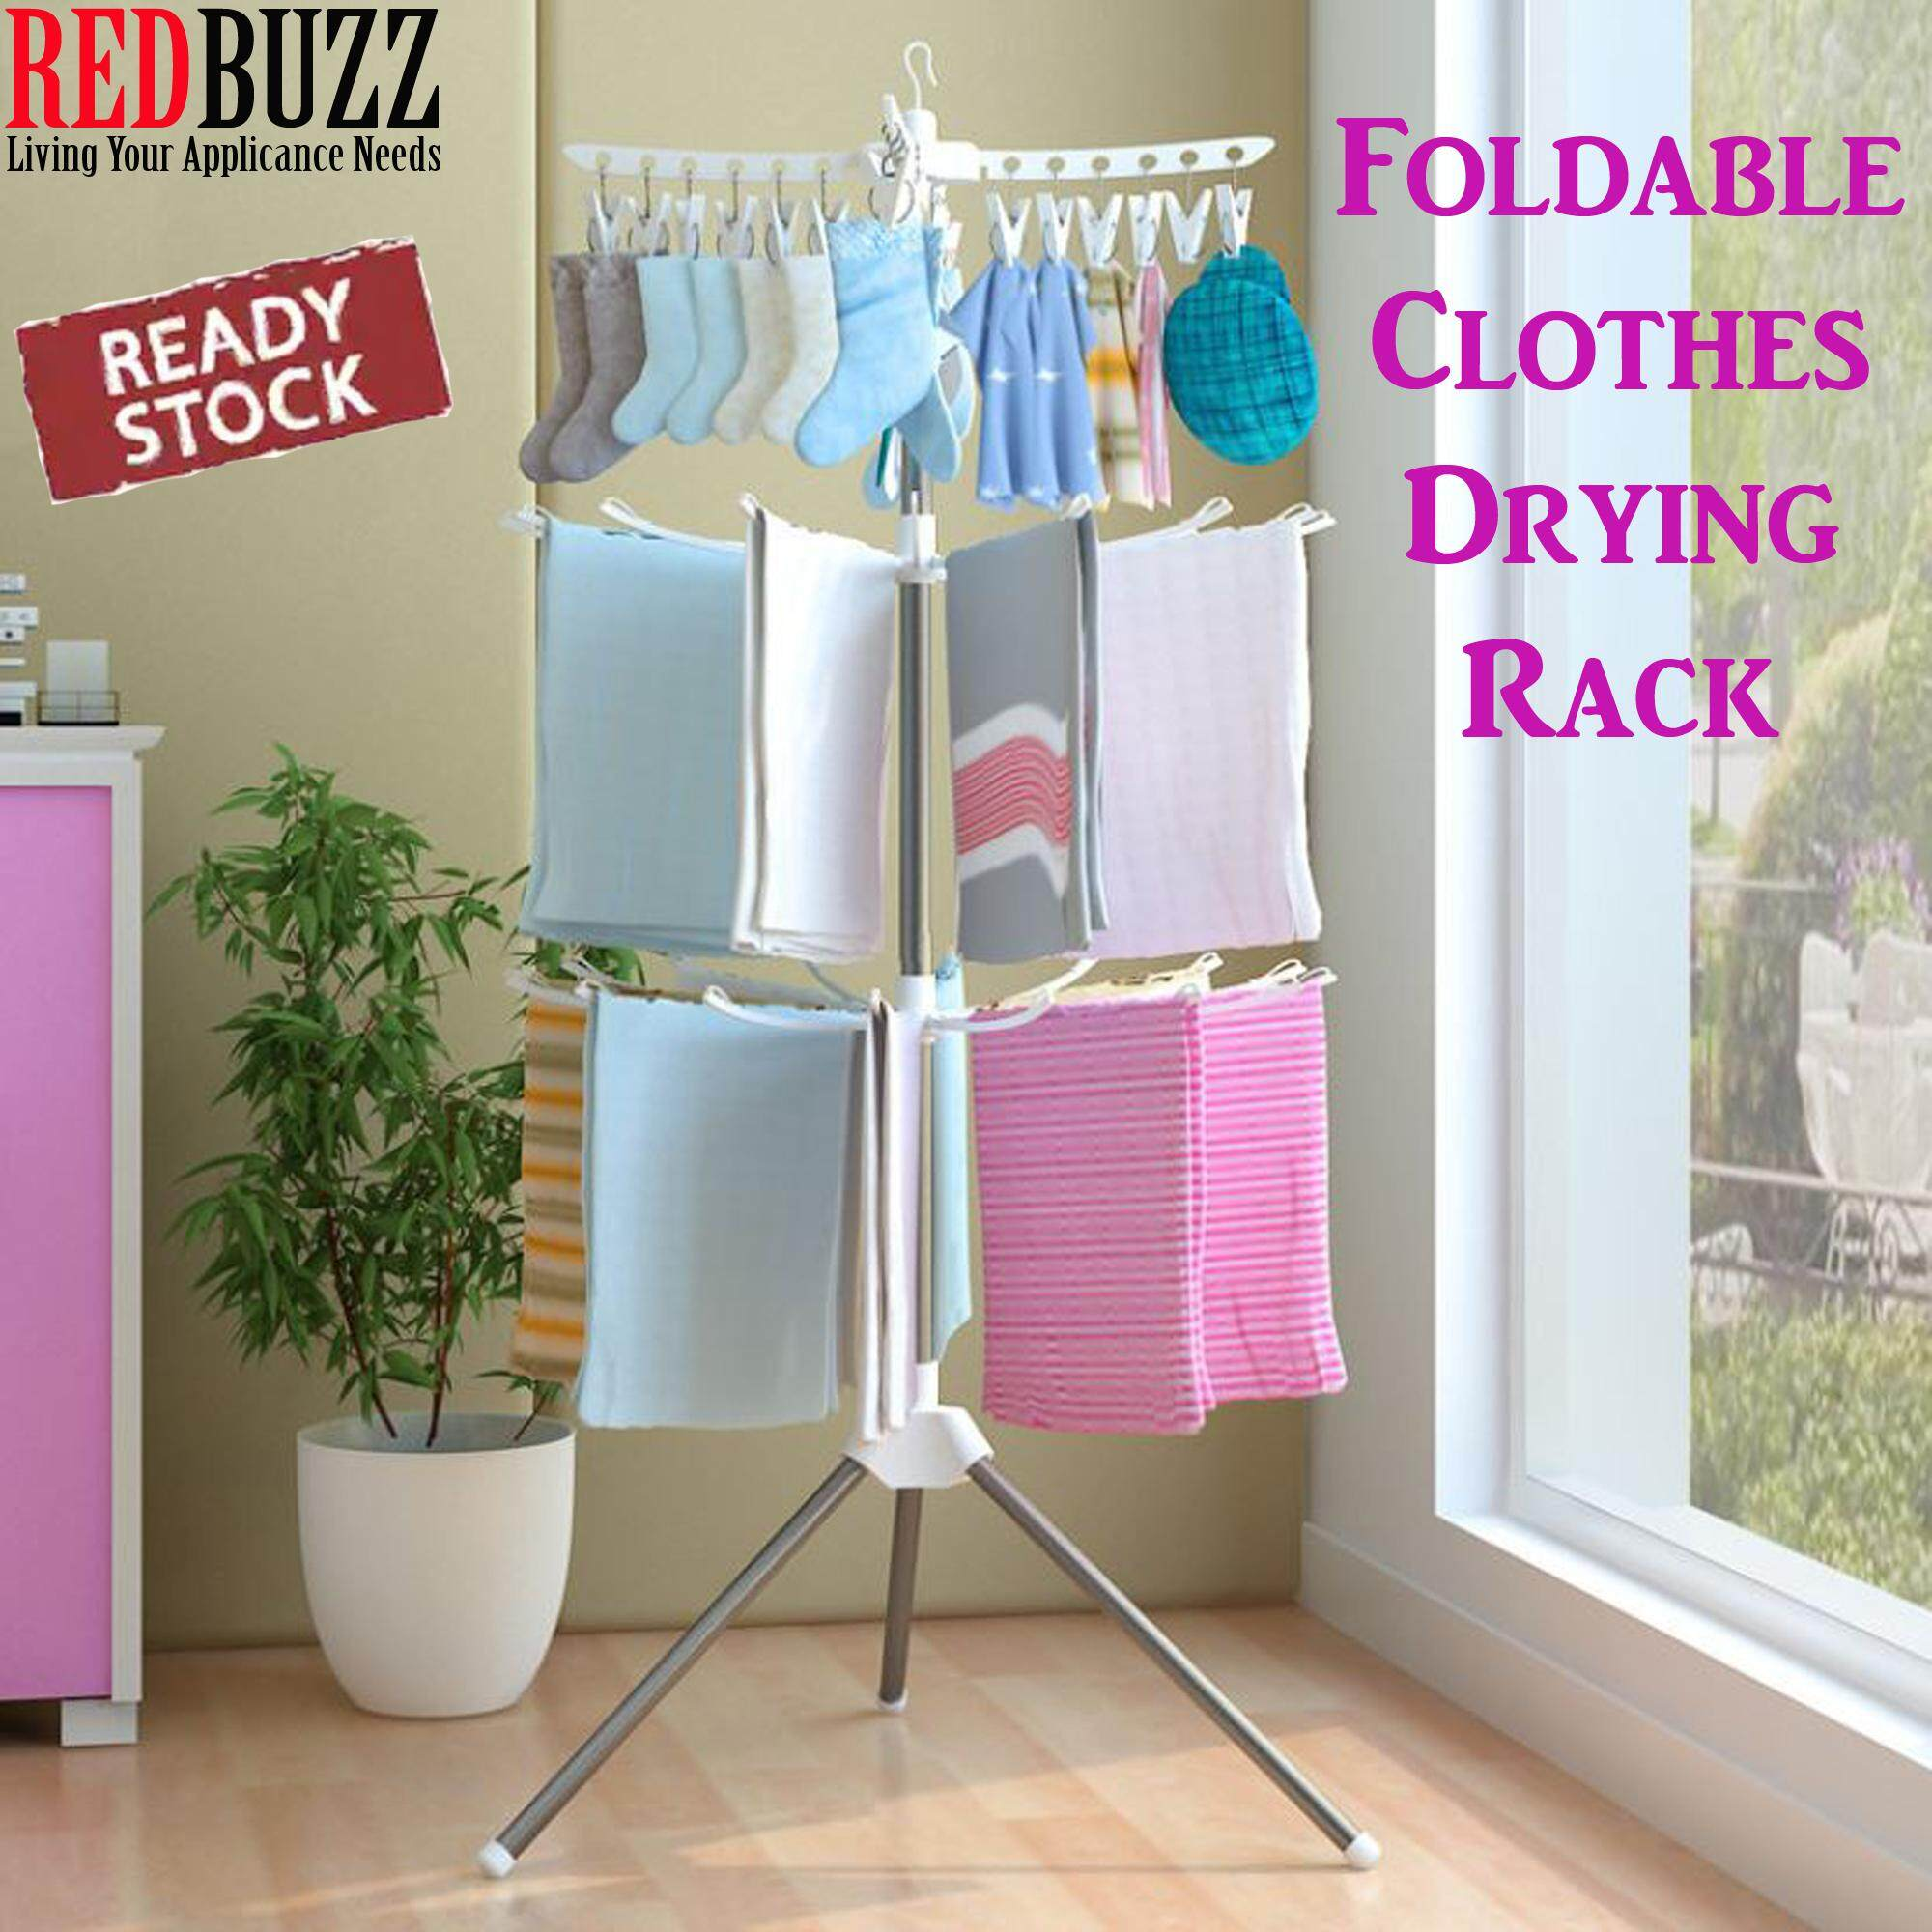 REDBUZZ 3 Tier Foldable Clothes Drying Rack Cloth Hanger Shelf Cloth Rack/ Ampaian Penyidai Baju